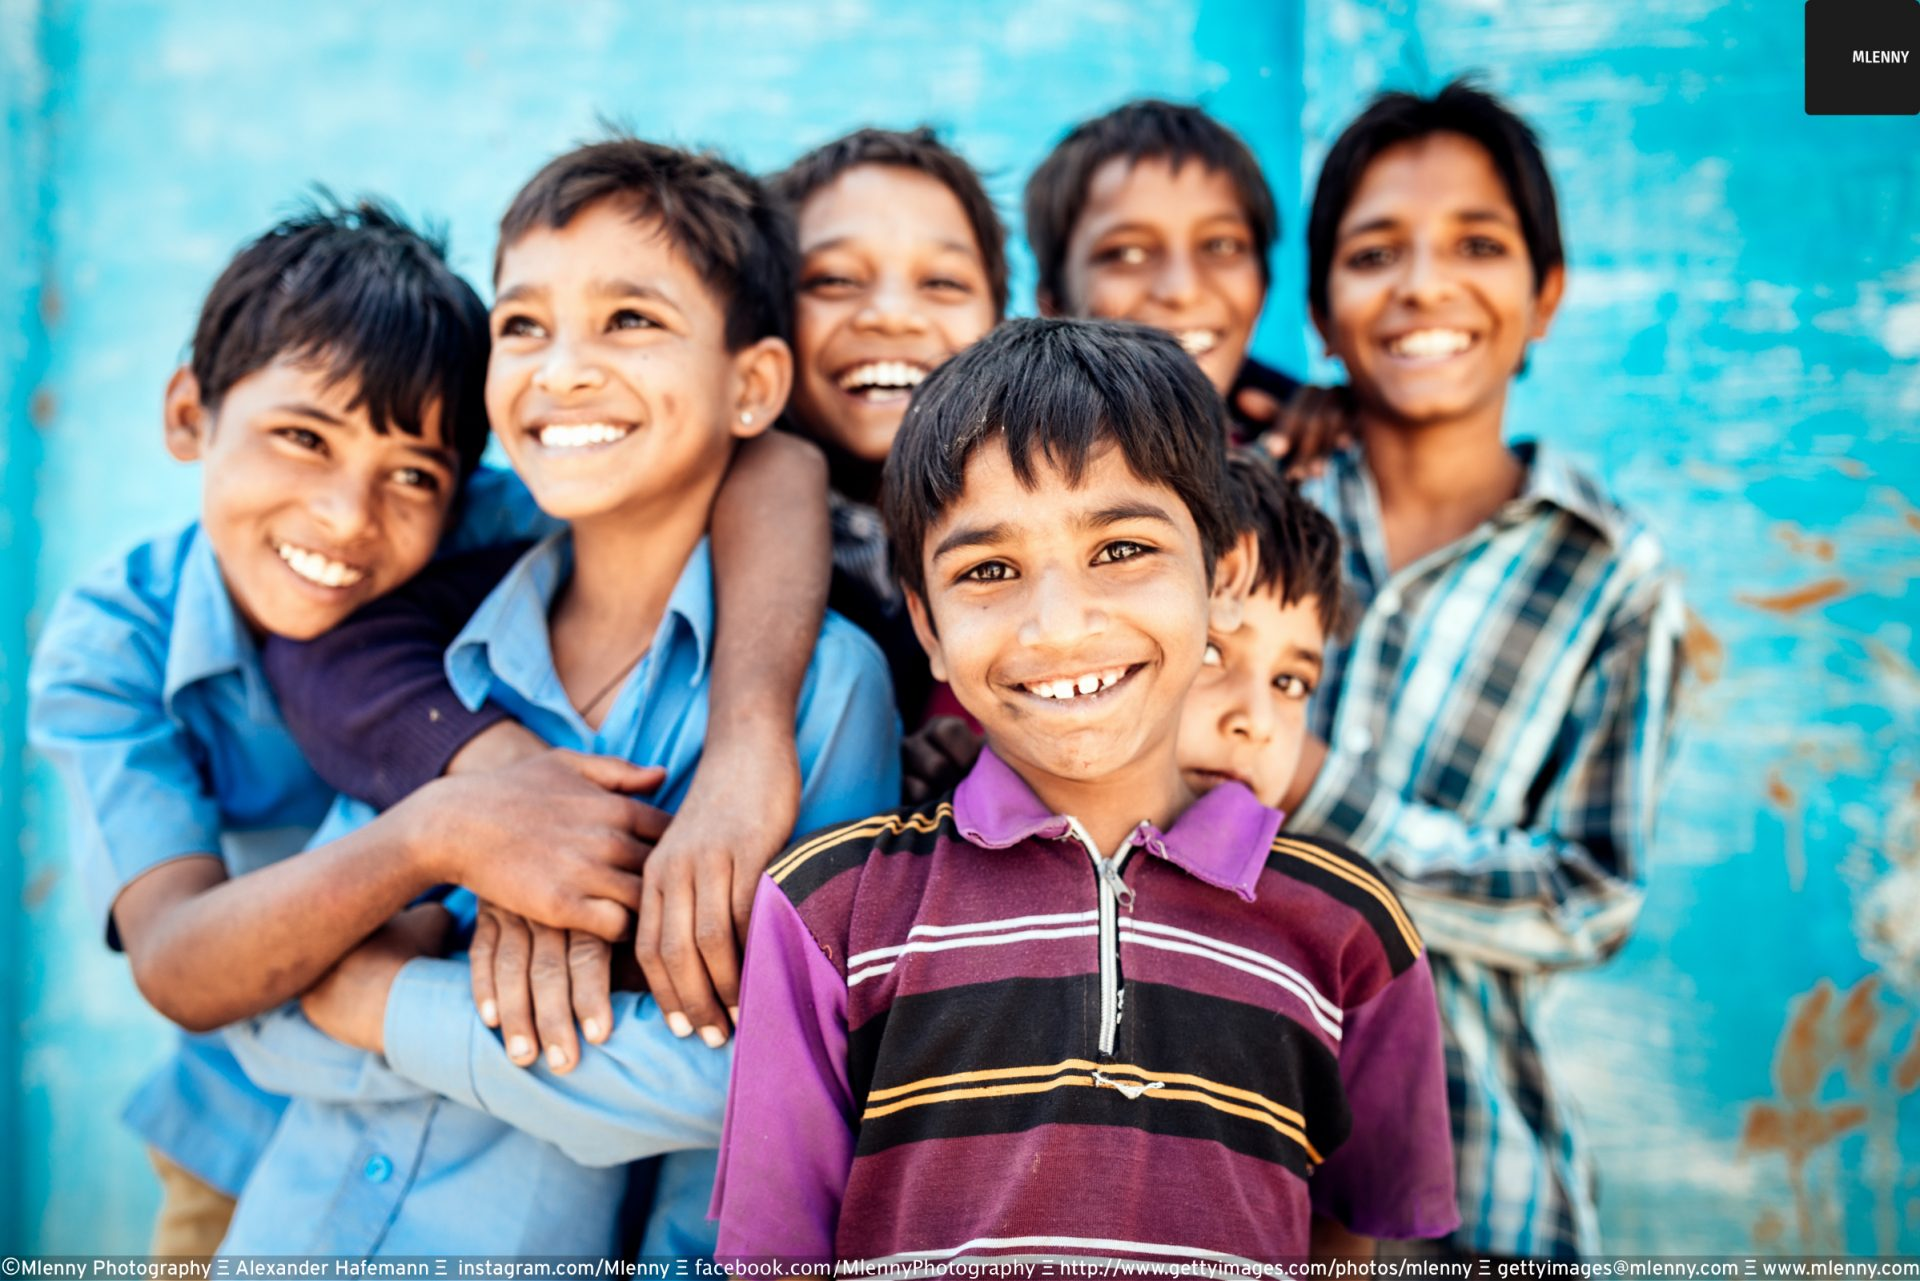 Smiling Happy Indian School Boys Together Rajasthan India